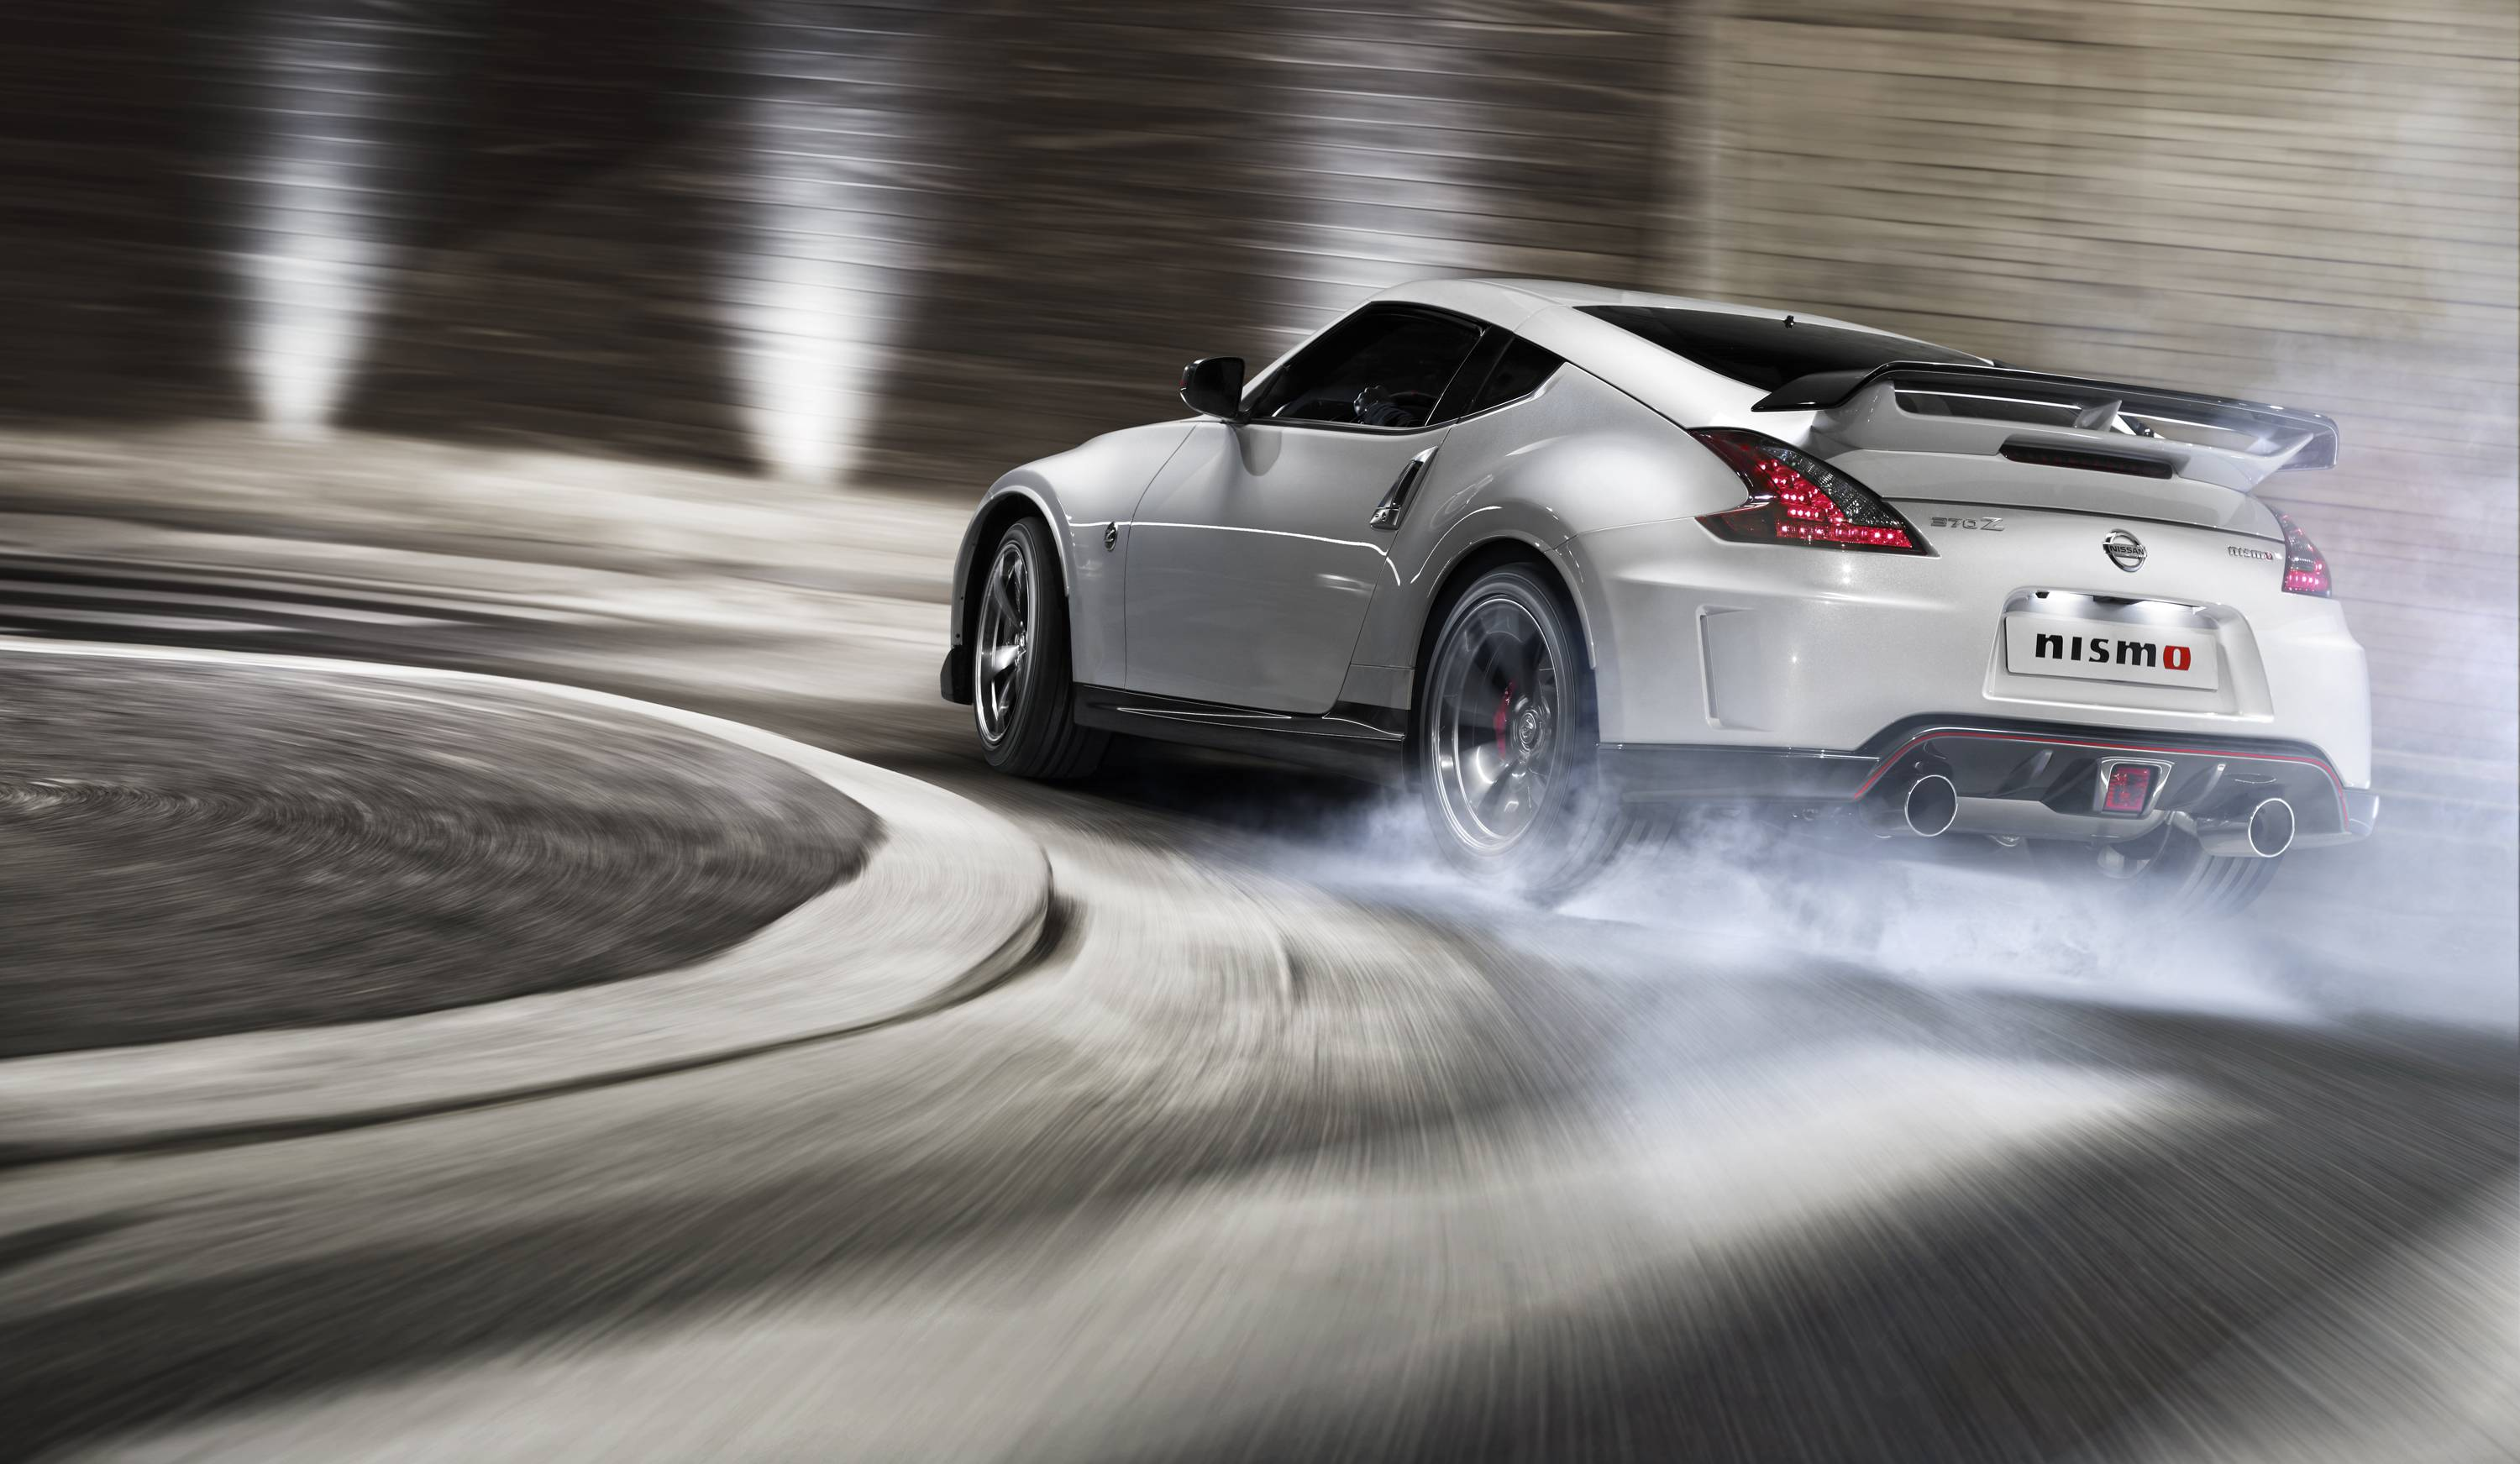 370Z NISMO Wallpapers - Wallpaper Cave